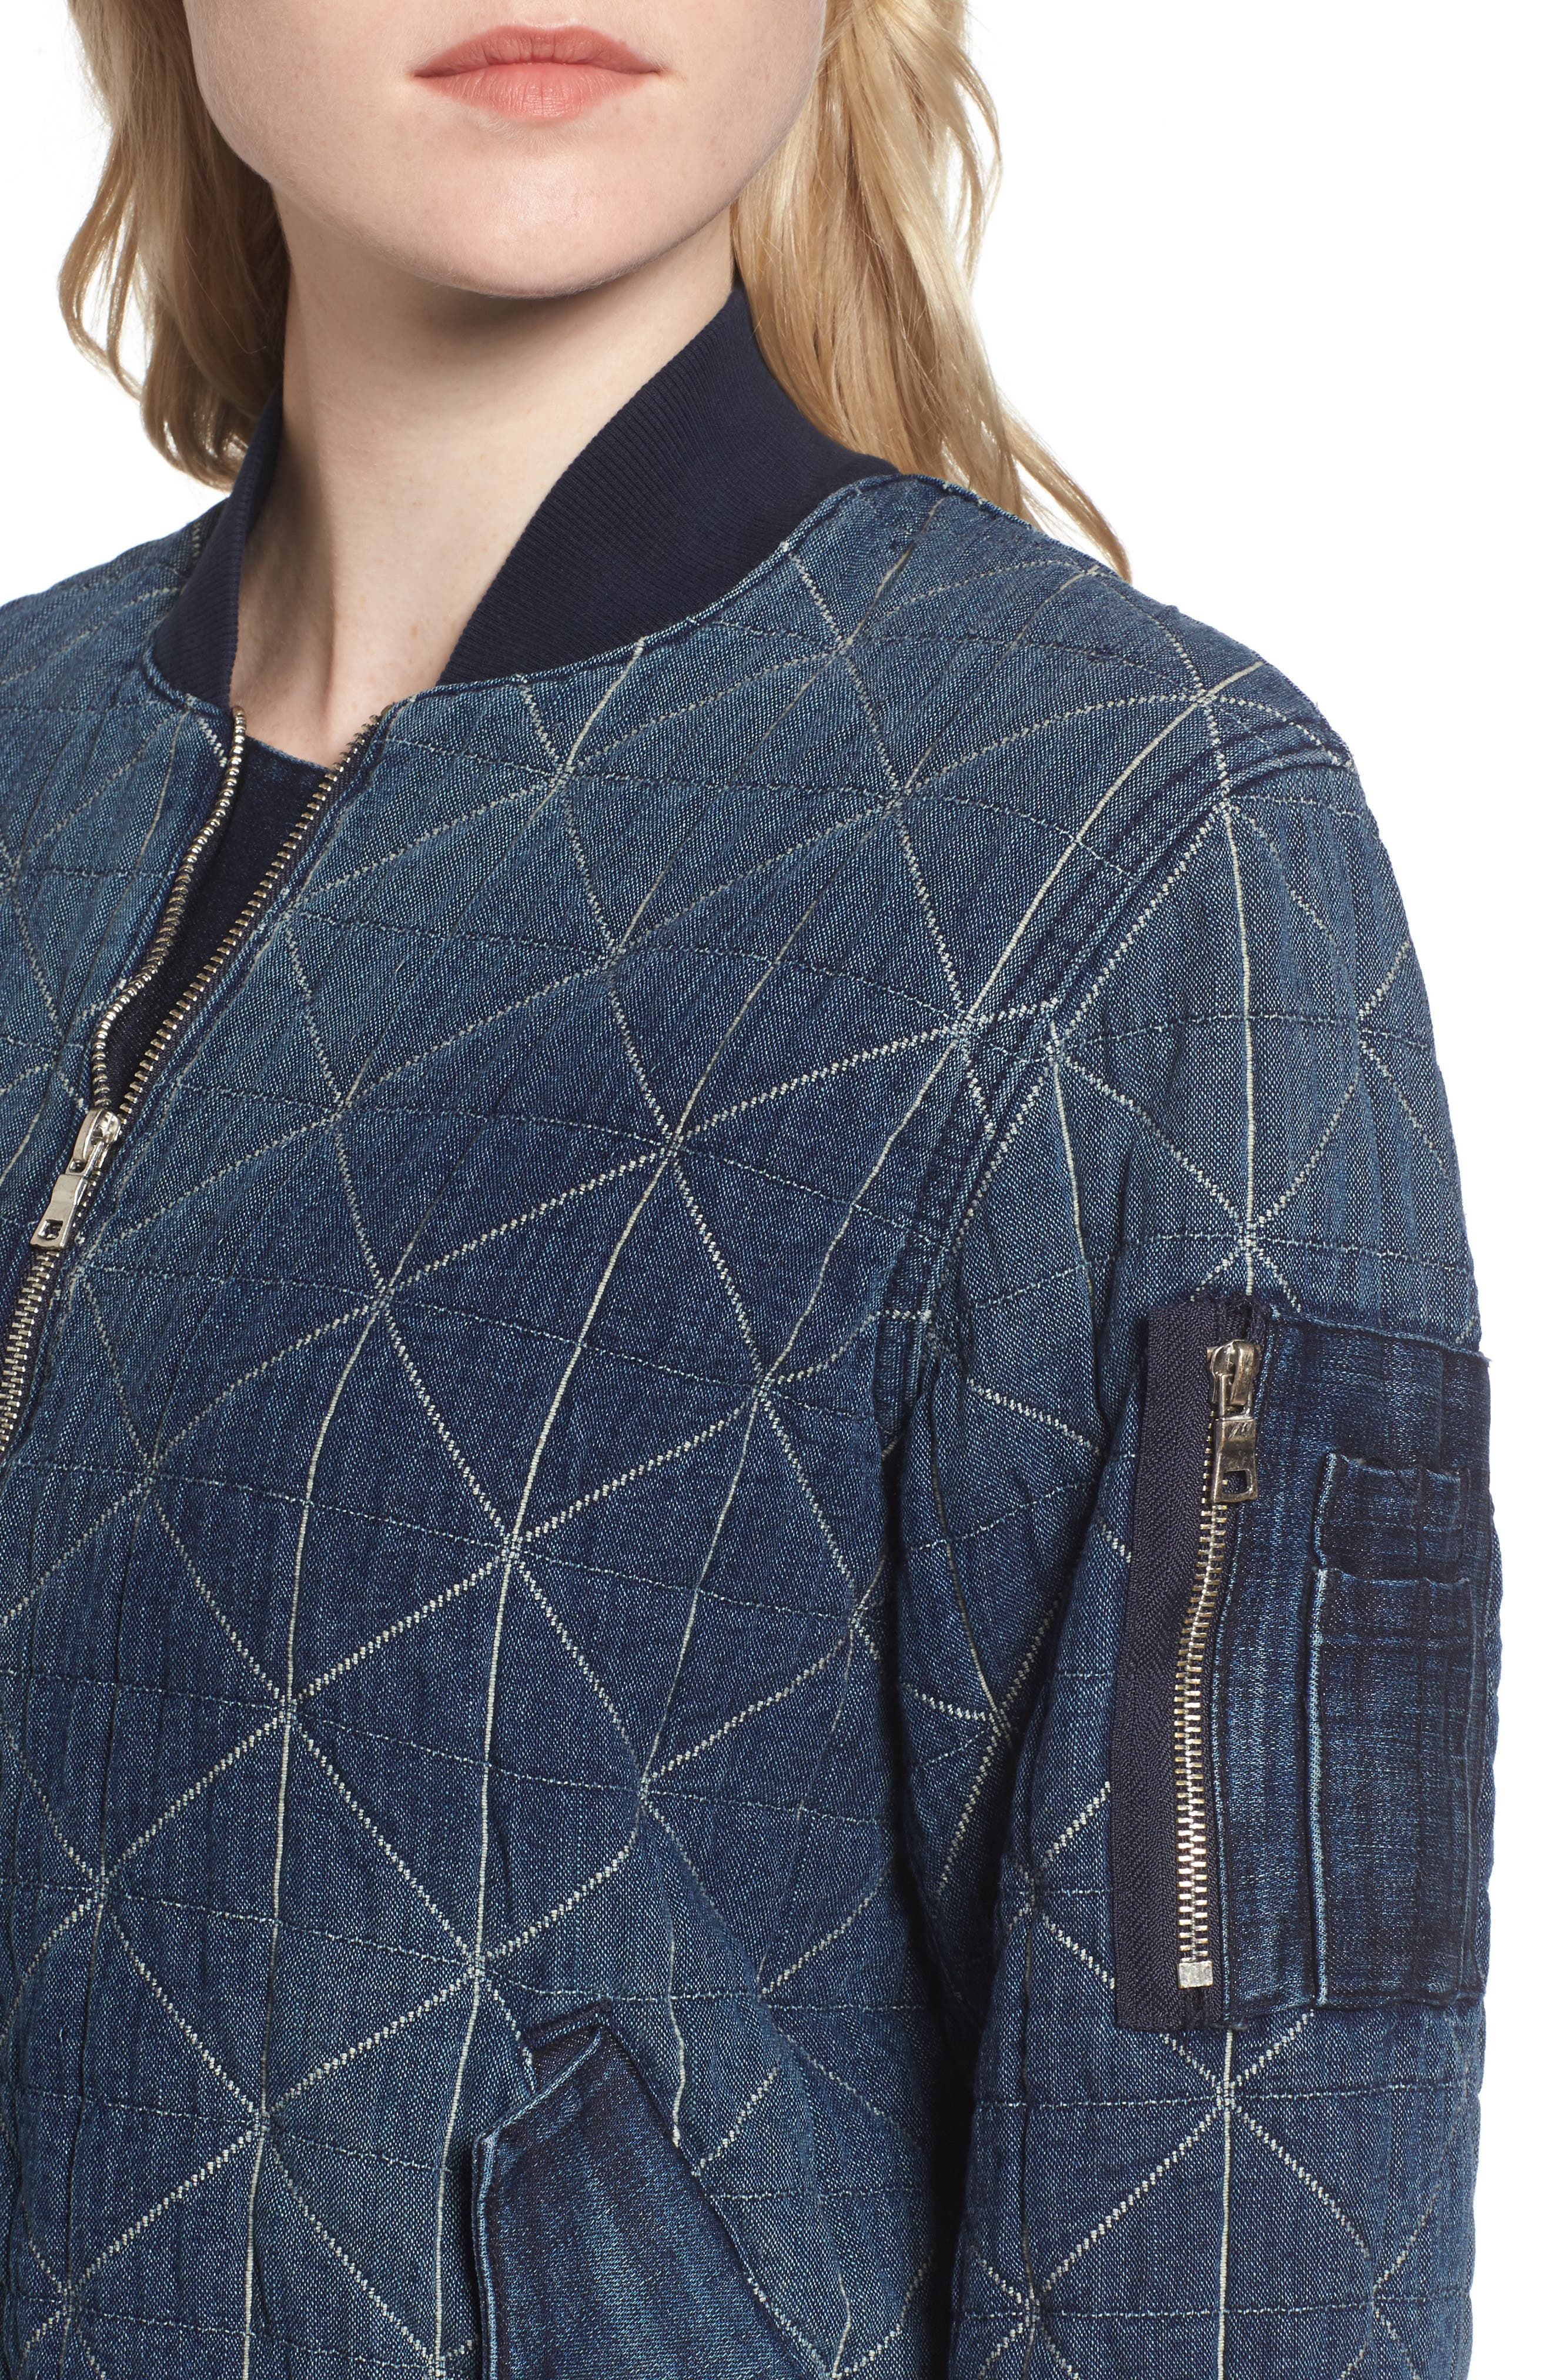 Gene Quilted Bomber Jacket,                             Alternate thumbnail 4, color,                             420